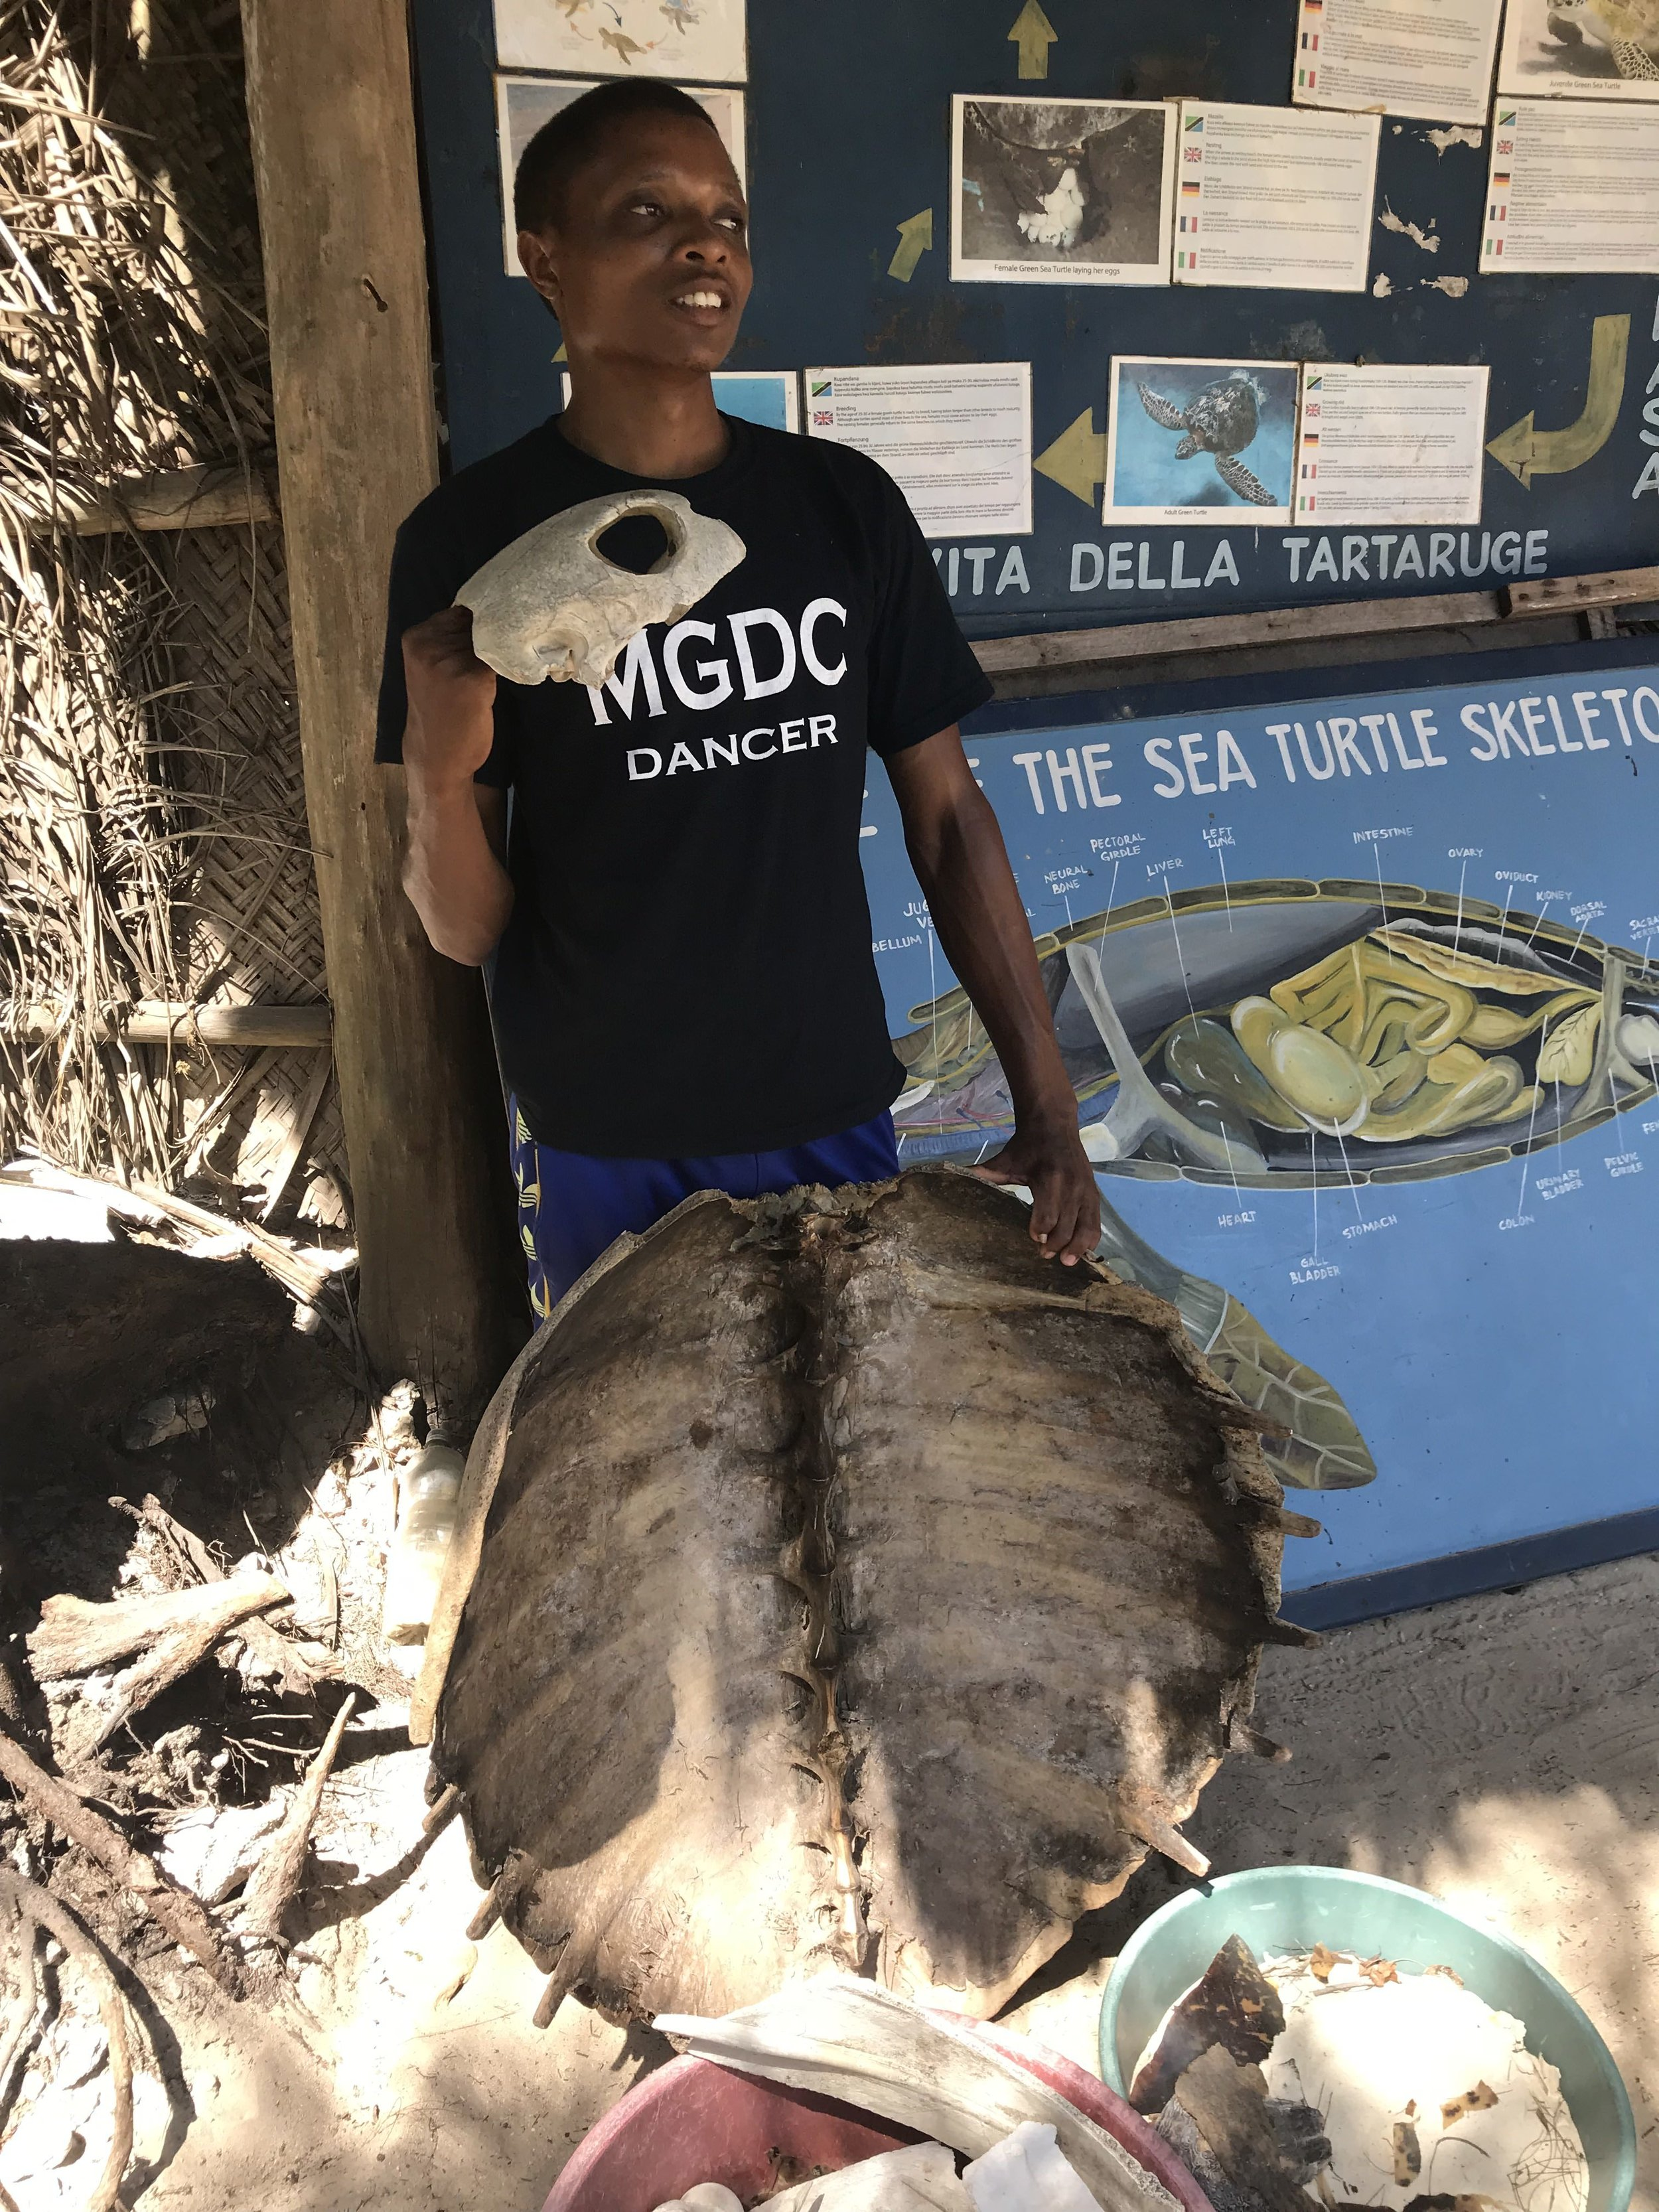 Our turtle sanctuary guide with a giant turtle shell (died from natural causes).